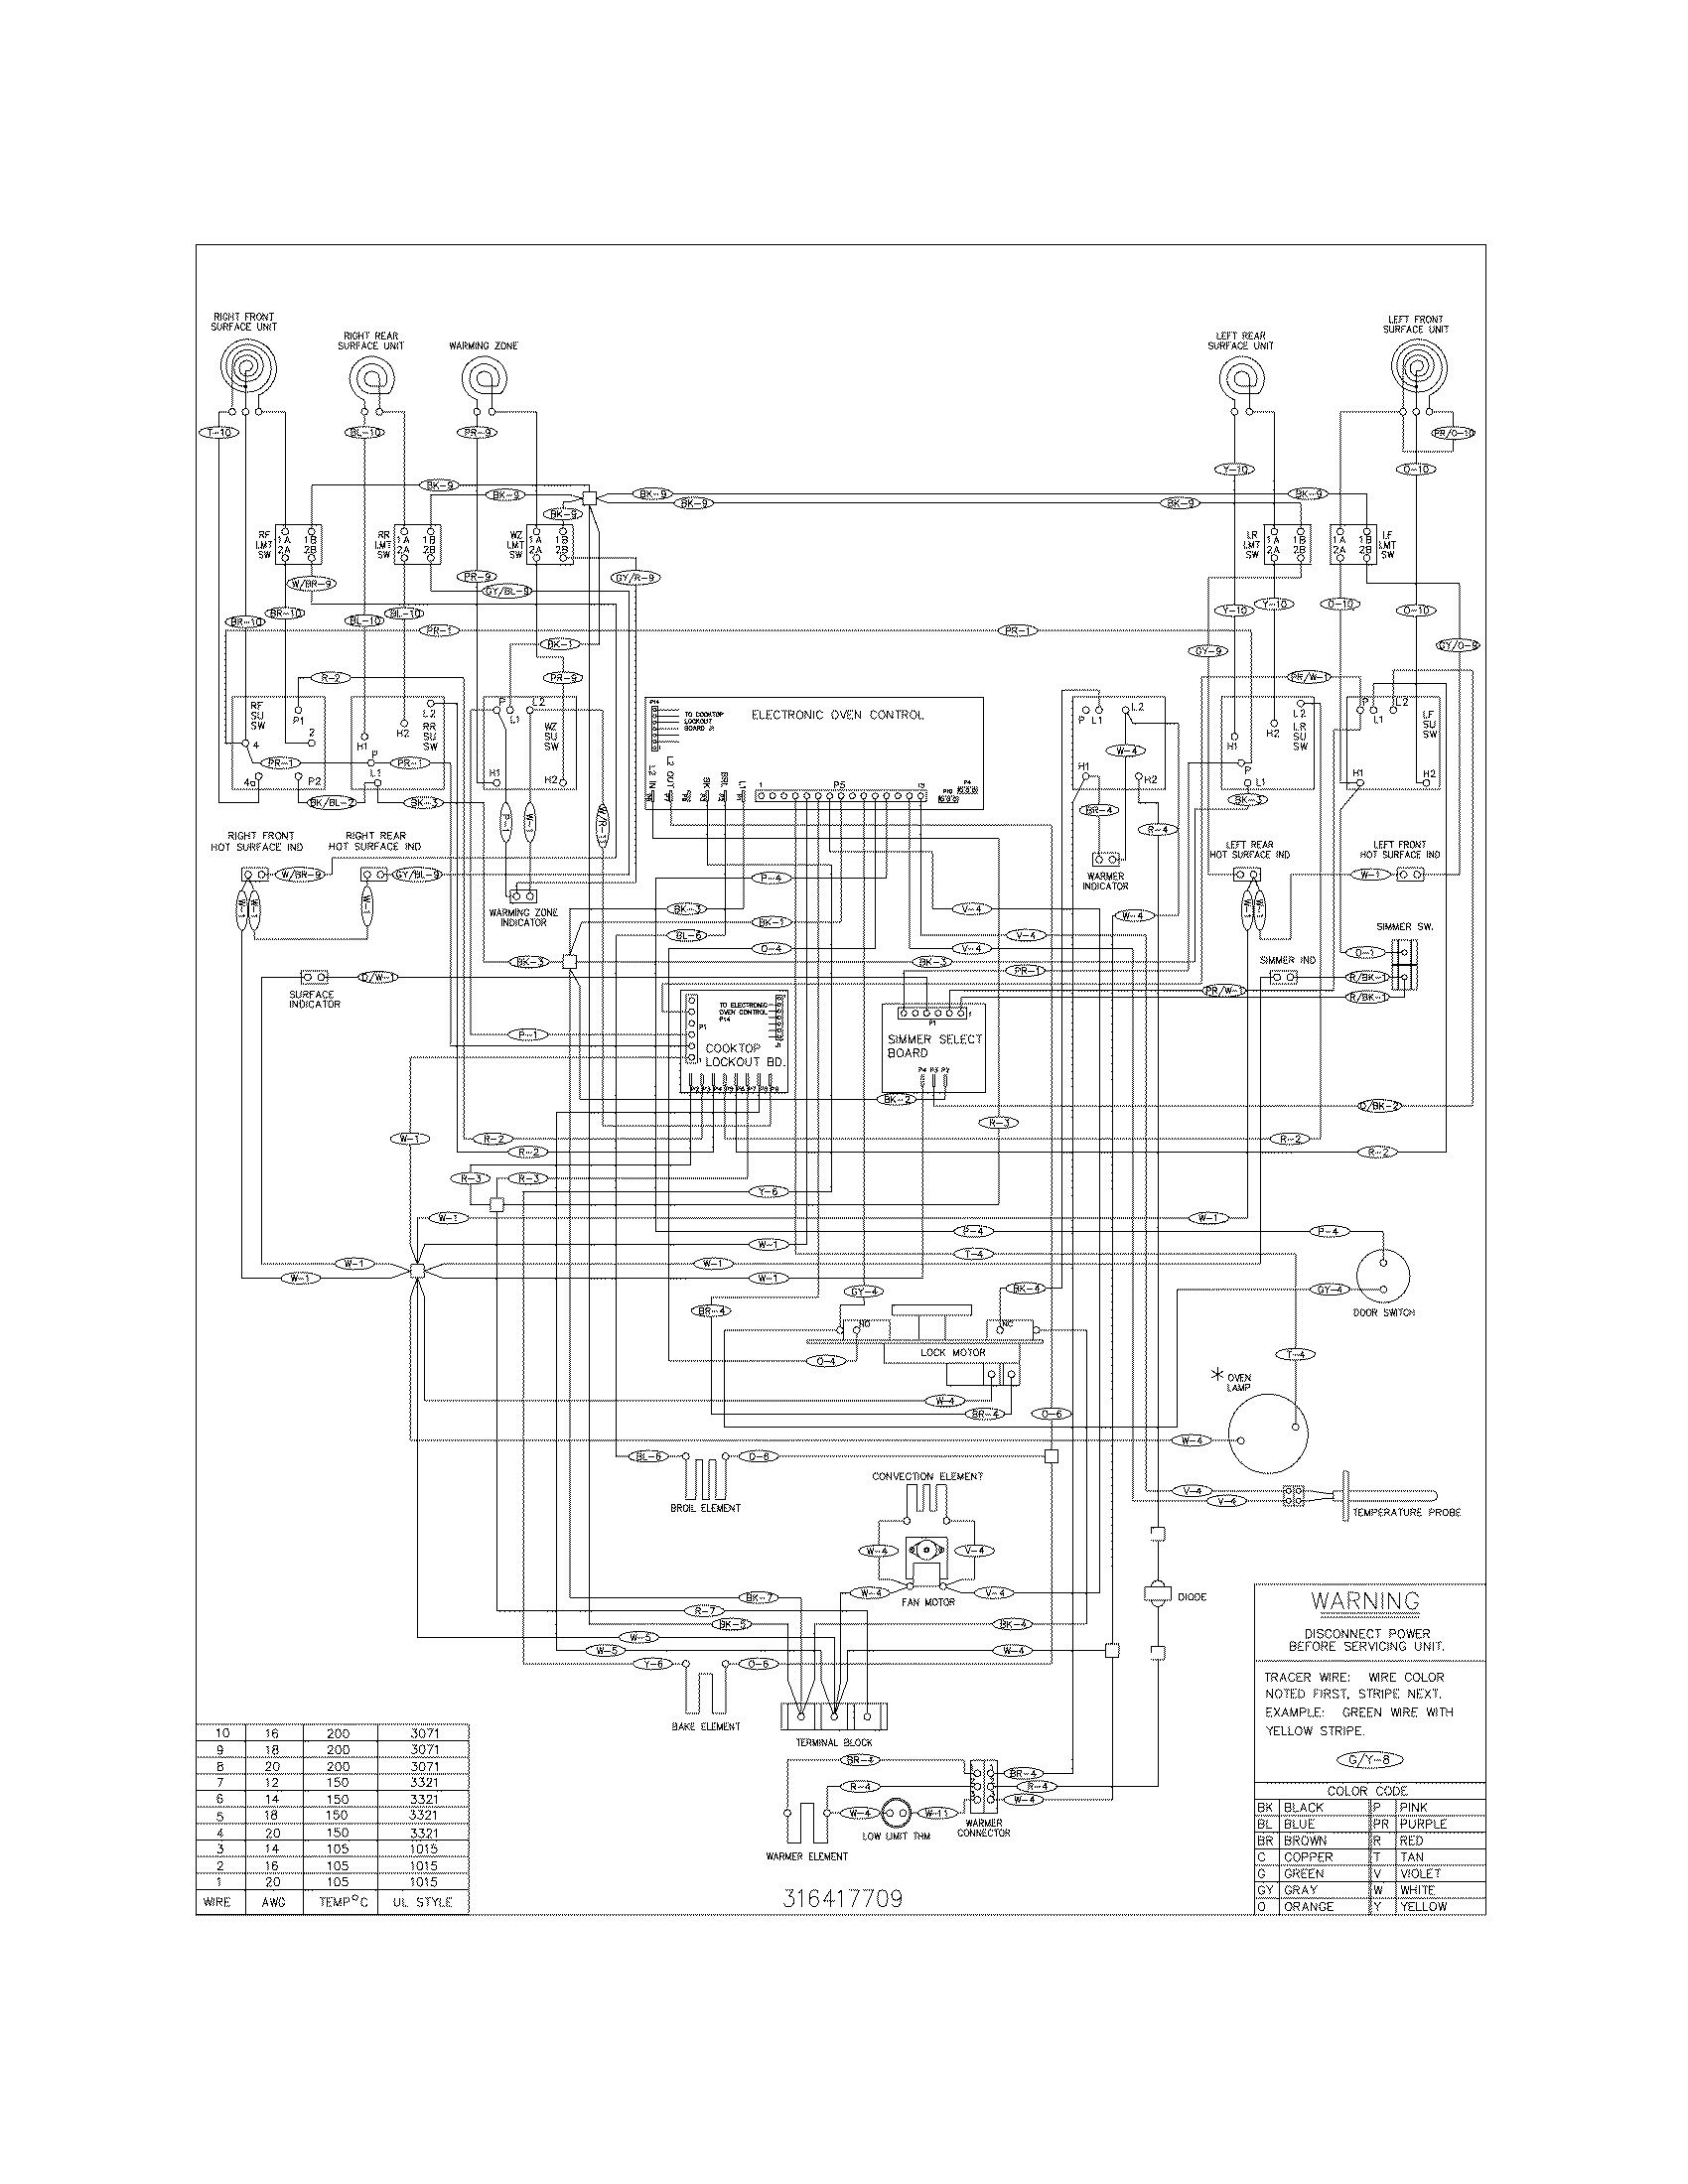 jenn air double wall oven wiring diagram